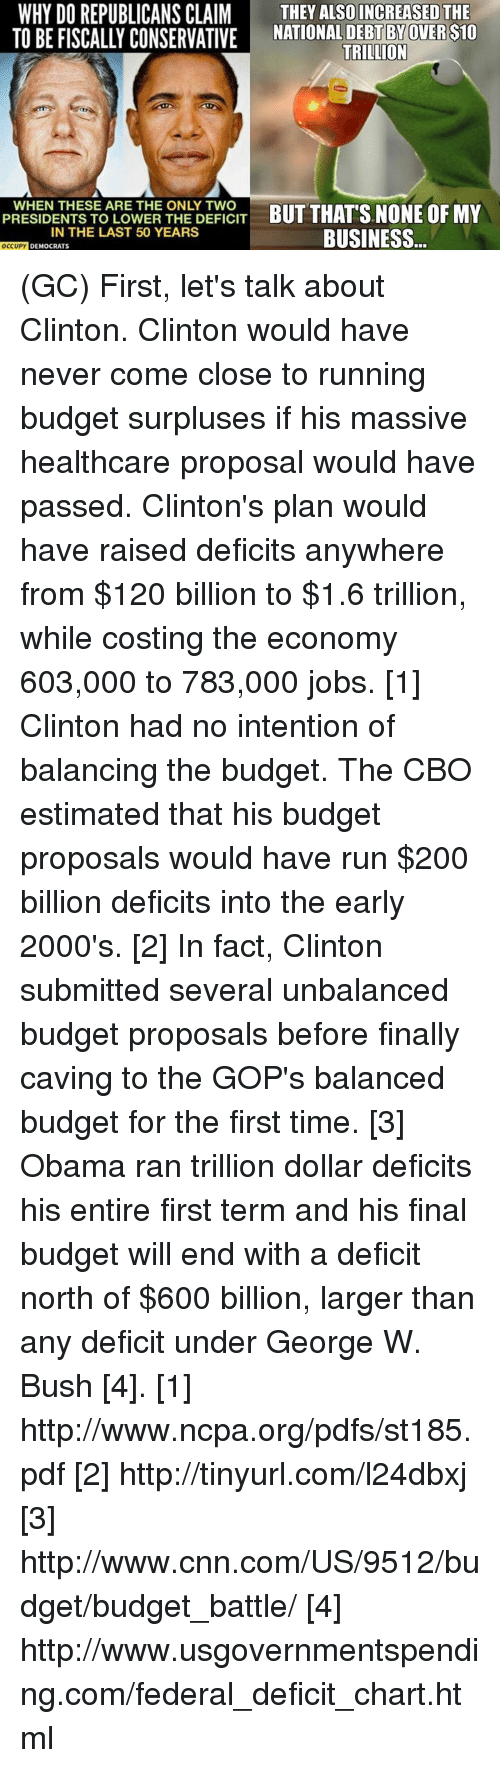 cnn.com, George W. Bush, and Memes: WHY DO REPUBLICANS CLAIM  THEY ALSO INCREASED THE  TO BE FISCALLY CONSERVATIVE NATIONAL DEBT BY  TRILLION  PRESIDENTS TO LOWER THE DEFICIT  BUT THATS NONE OF MY  IN THE LAST 50 YEARS  BUSINESS  DEMocRATs  OCCUPY (GC) First, let's talk about Clinton. Clinton would have never come close to running budget surpluses if his massive healthcare proposal would have passed. Clinton's plan would have raised deficits anywhere from $120 billion to $1.6 trillion, while costing the economy 603,000 to 783,000 jobs. [1]    Clinton had no intention of balancing the budget. The CBO estimated that his budget proposals would have run $200 billion deficits into the early 2000's. [2] In fact, Clinton submitted several unbalanced budget proposals before finally caving to the GOP's balanced budget for the first time. [3]   Obama ran trillion dollar deficits his entire first term and his final budget will end with a deficit north of $600 billion, larger than any deficit under George W. Bush [4].   [1]  http://www.ncpa.org/pdfs/st185.pdf [2] http://tinyurl.com/l24dbxj [3] http://www.cnn.com/US/9512/budget/budget_battle/ [4] http://www.usgovernmentspending.com/federal_deficit_chart.html